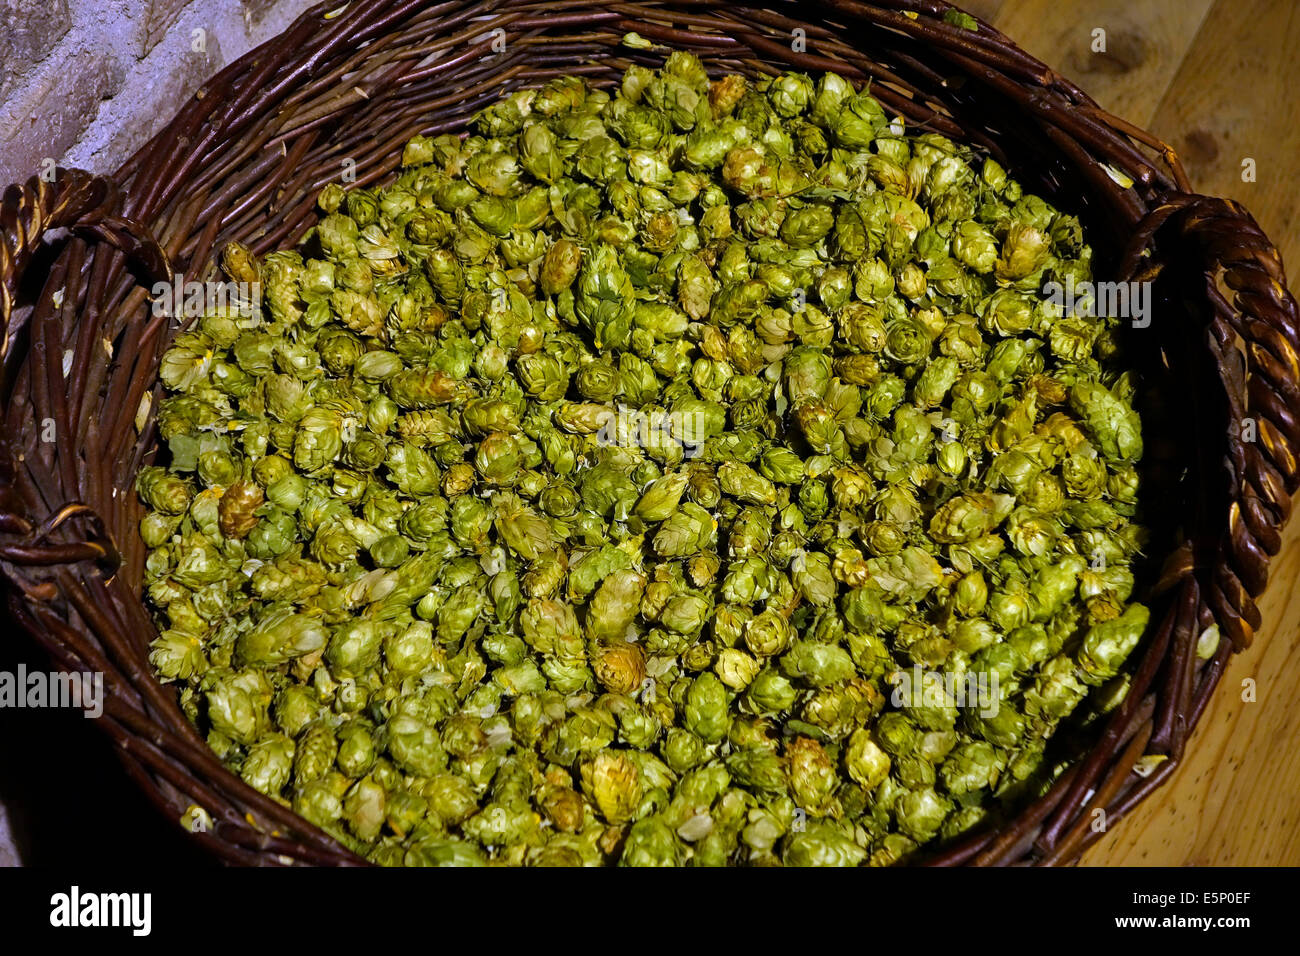 Basket with harvested hops flowers in the Hop Museum about the cultivation and uses of hops at Poperinge, Flanders, - Stock Image